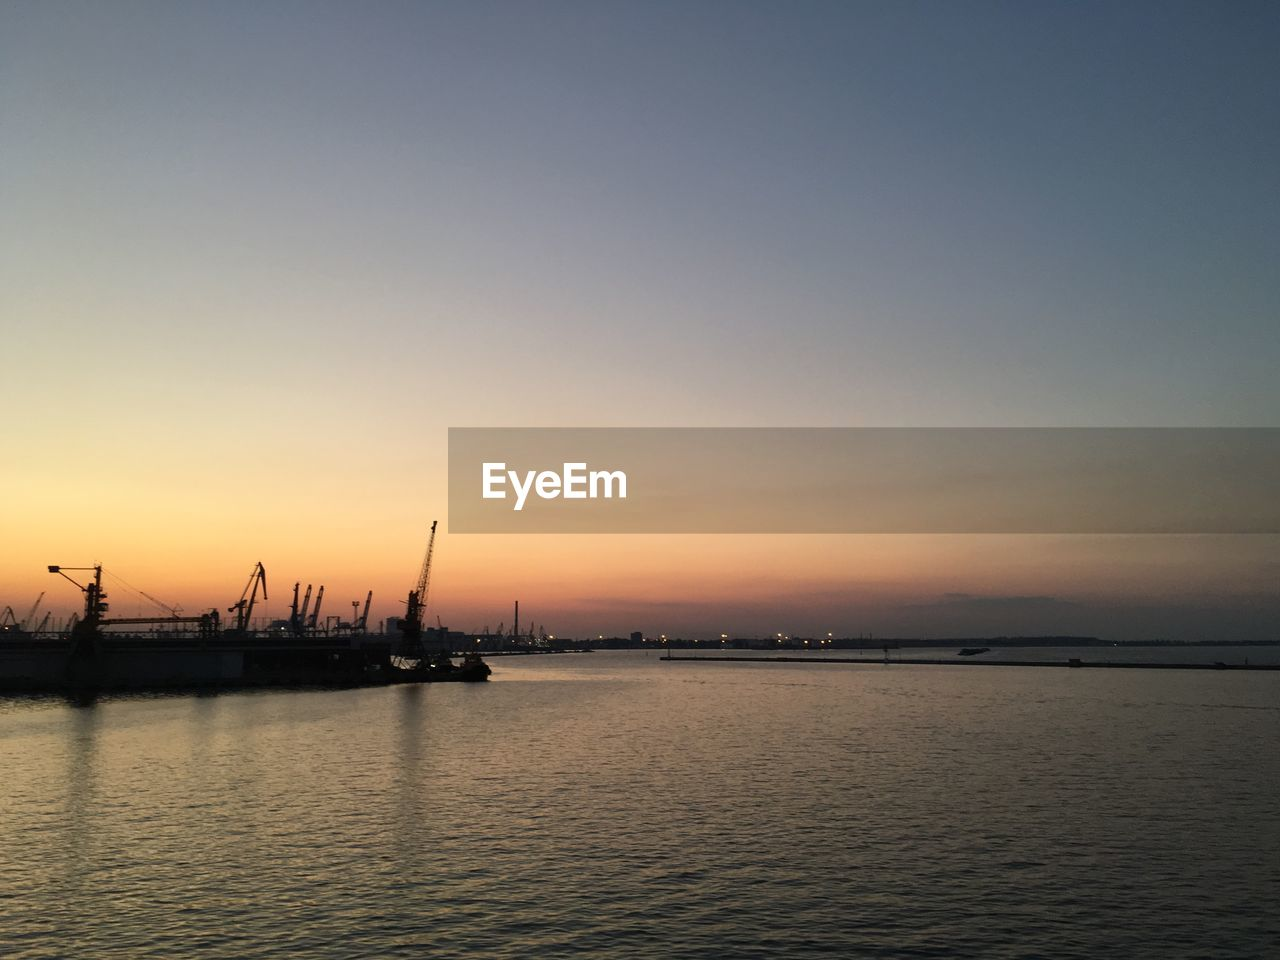 sunset, water, waterfront, silhouette, tranquility, nature, sea, nautical vessel, scenics, transportation, commercial dock, outdoors, sky, tranquil scene, beauty in nature, harbor, no people, clear sky, architecture, day, drilling rig